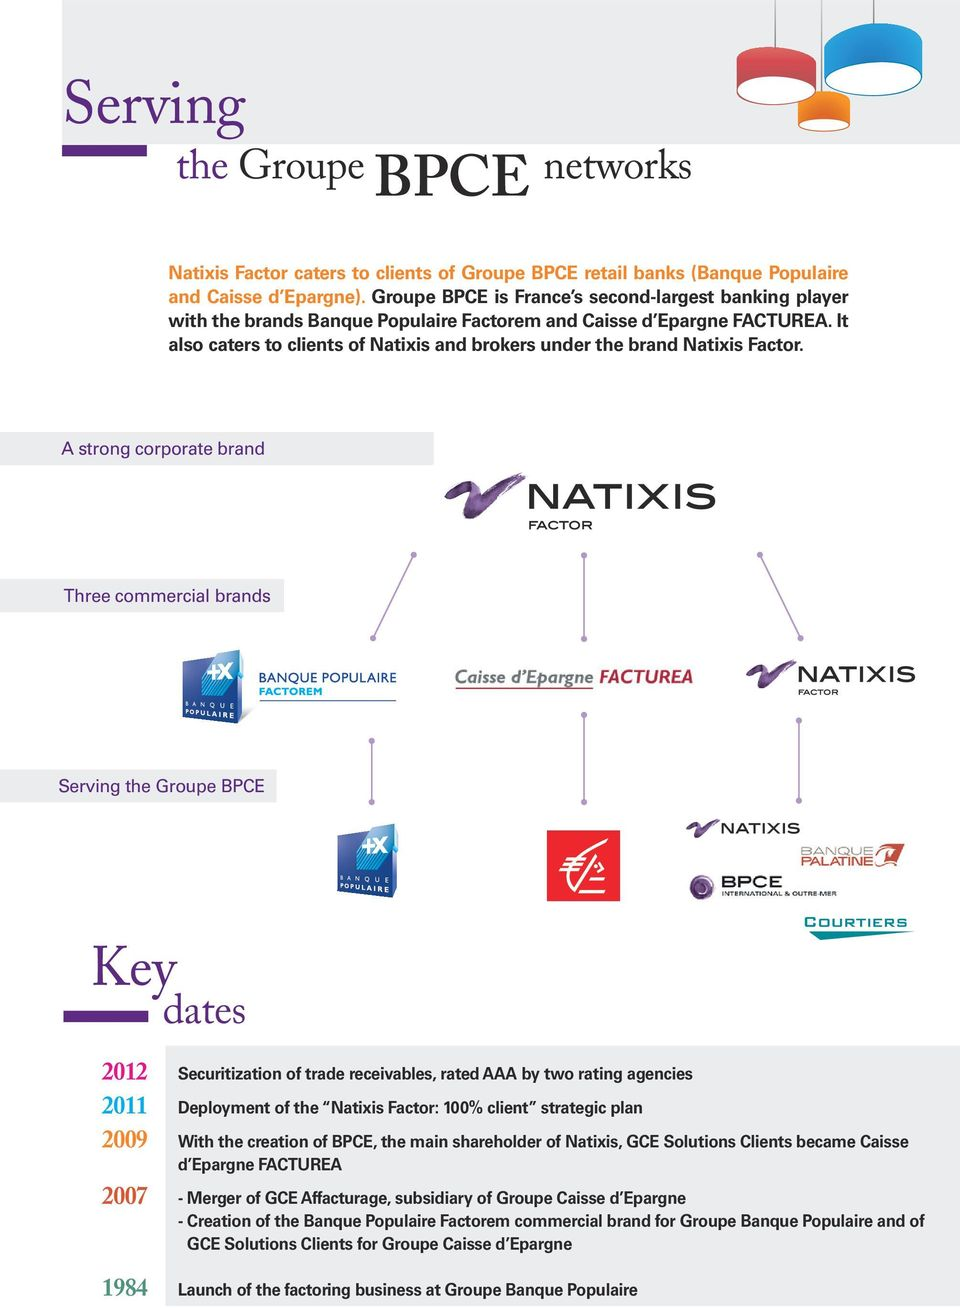 It also caters to clients of Natixis and brokers under the brand Natixis Factor.